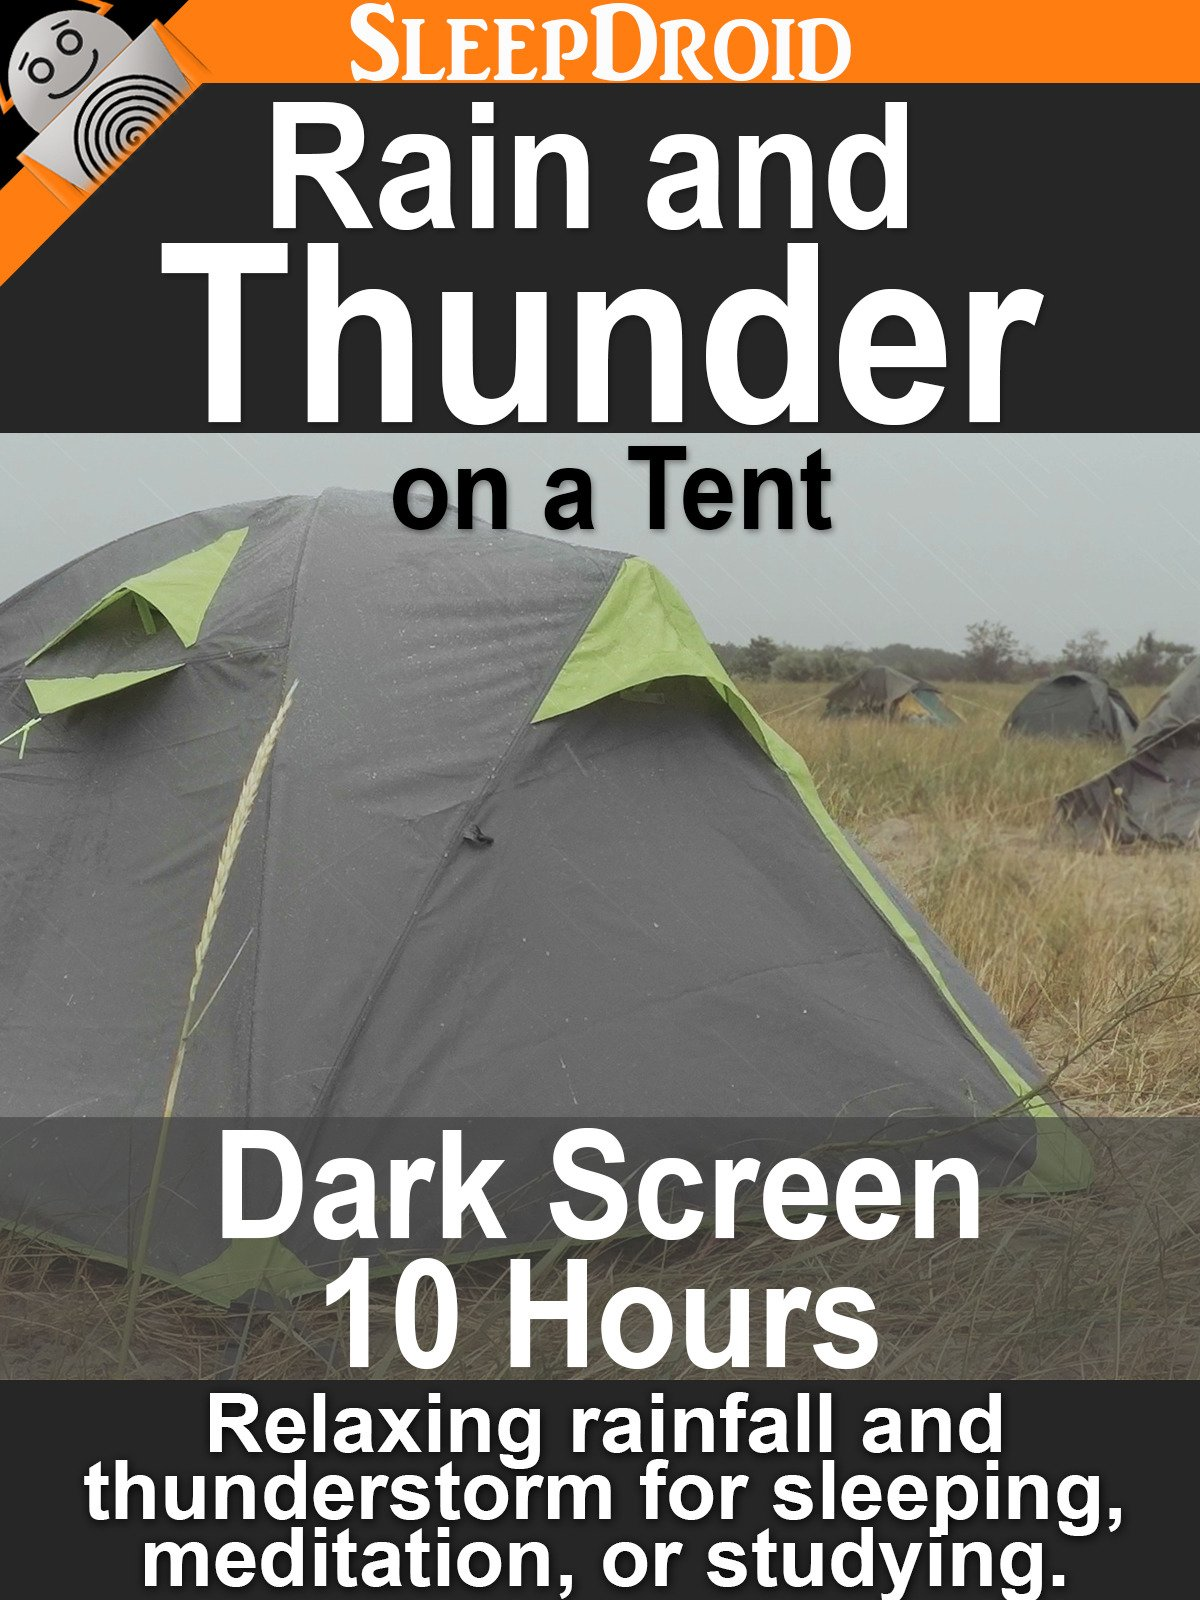 Rain and Thunder on a Tent: Dark Screen 10 Hours Relaxing rainfall and thunderstorm for sleeping, meditation, or studying.